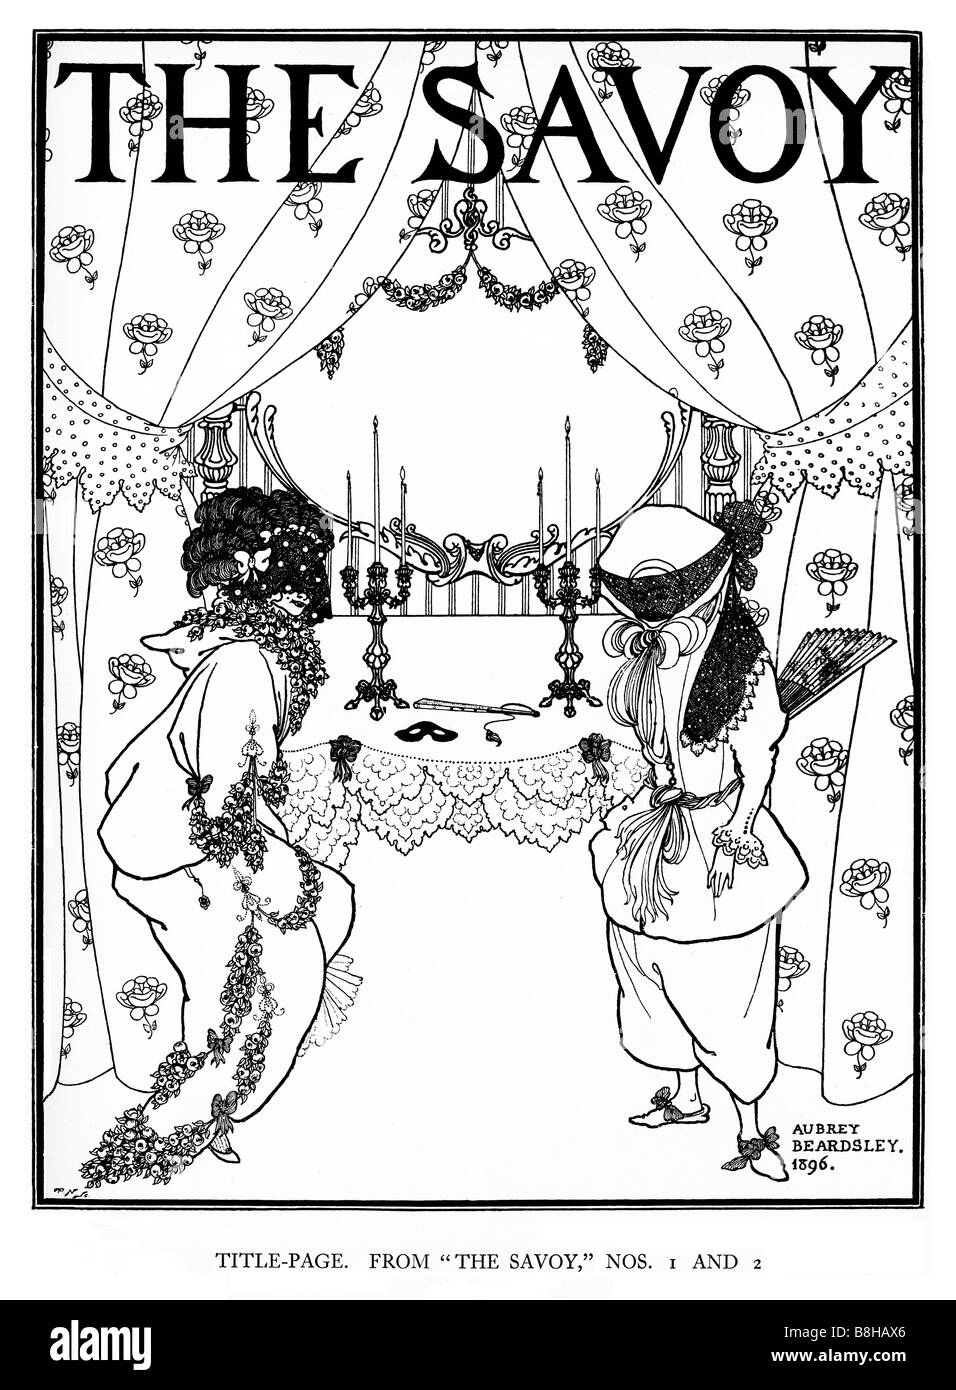 Aubrey Beardsley The Savoy Title Page illustration from the first and second editions of the literary magazine in - Stock Image